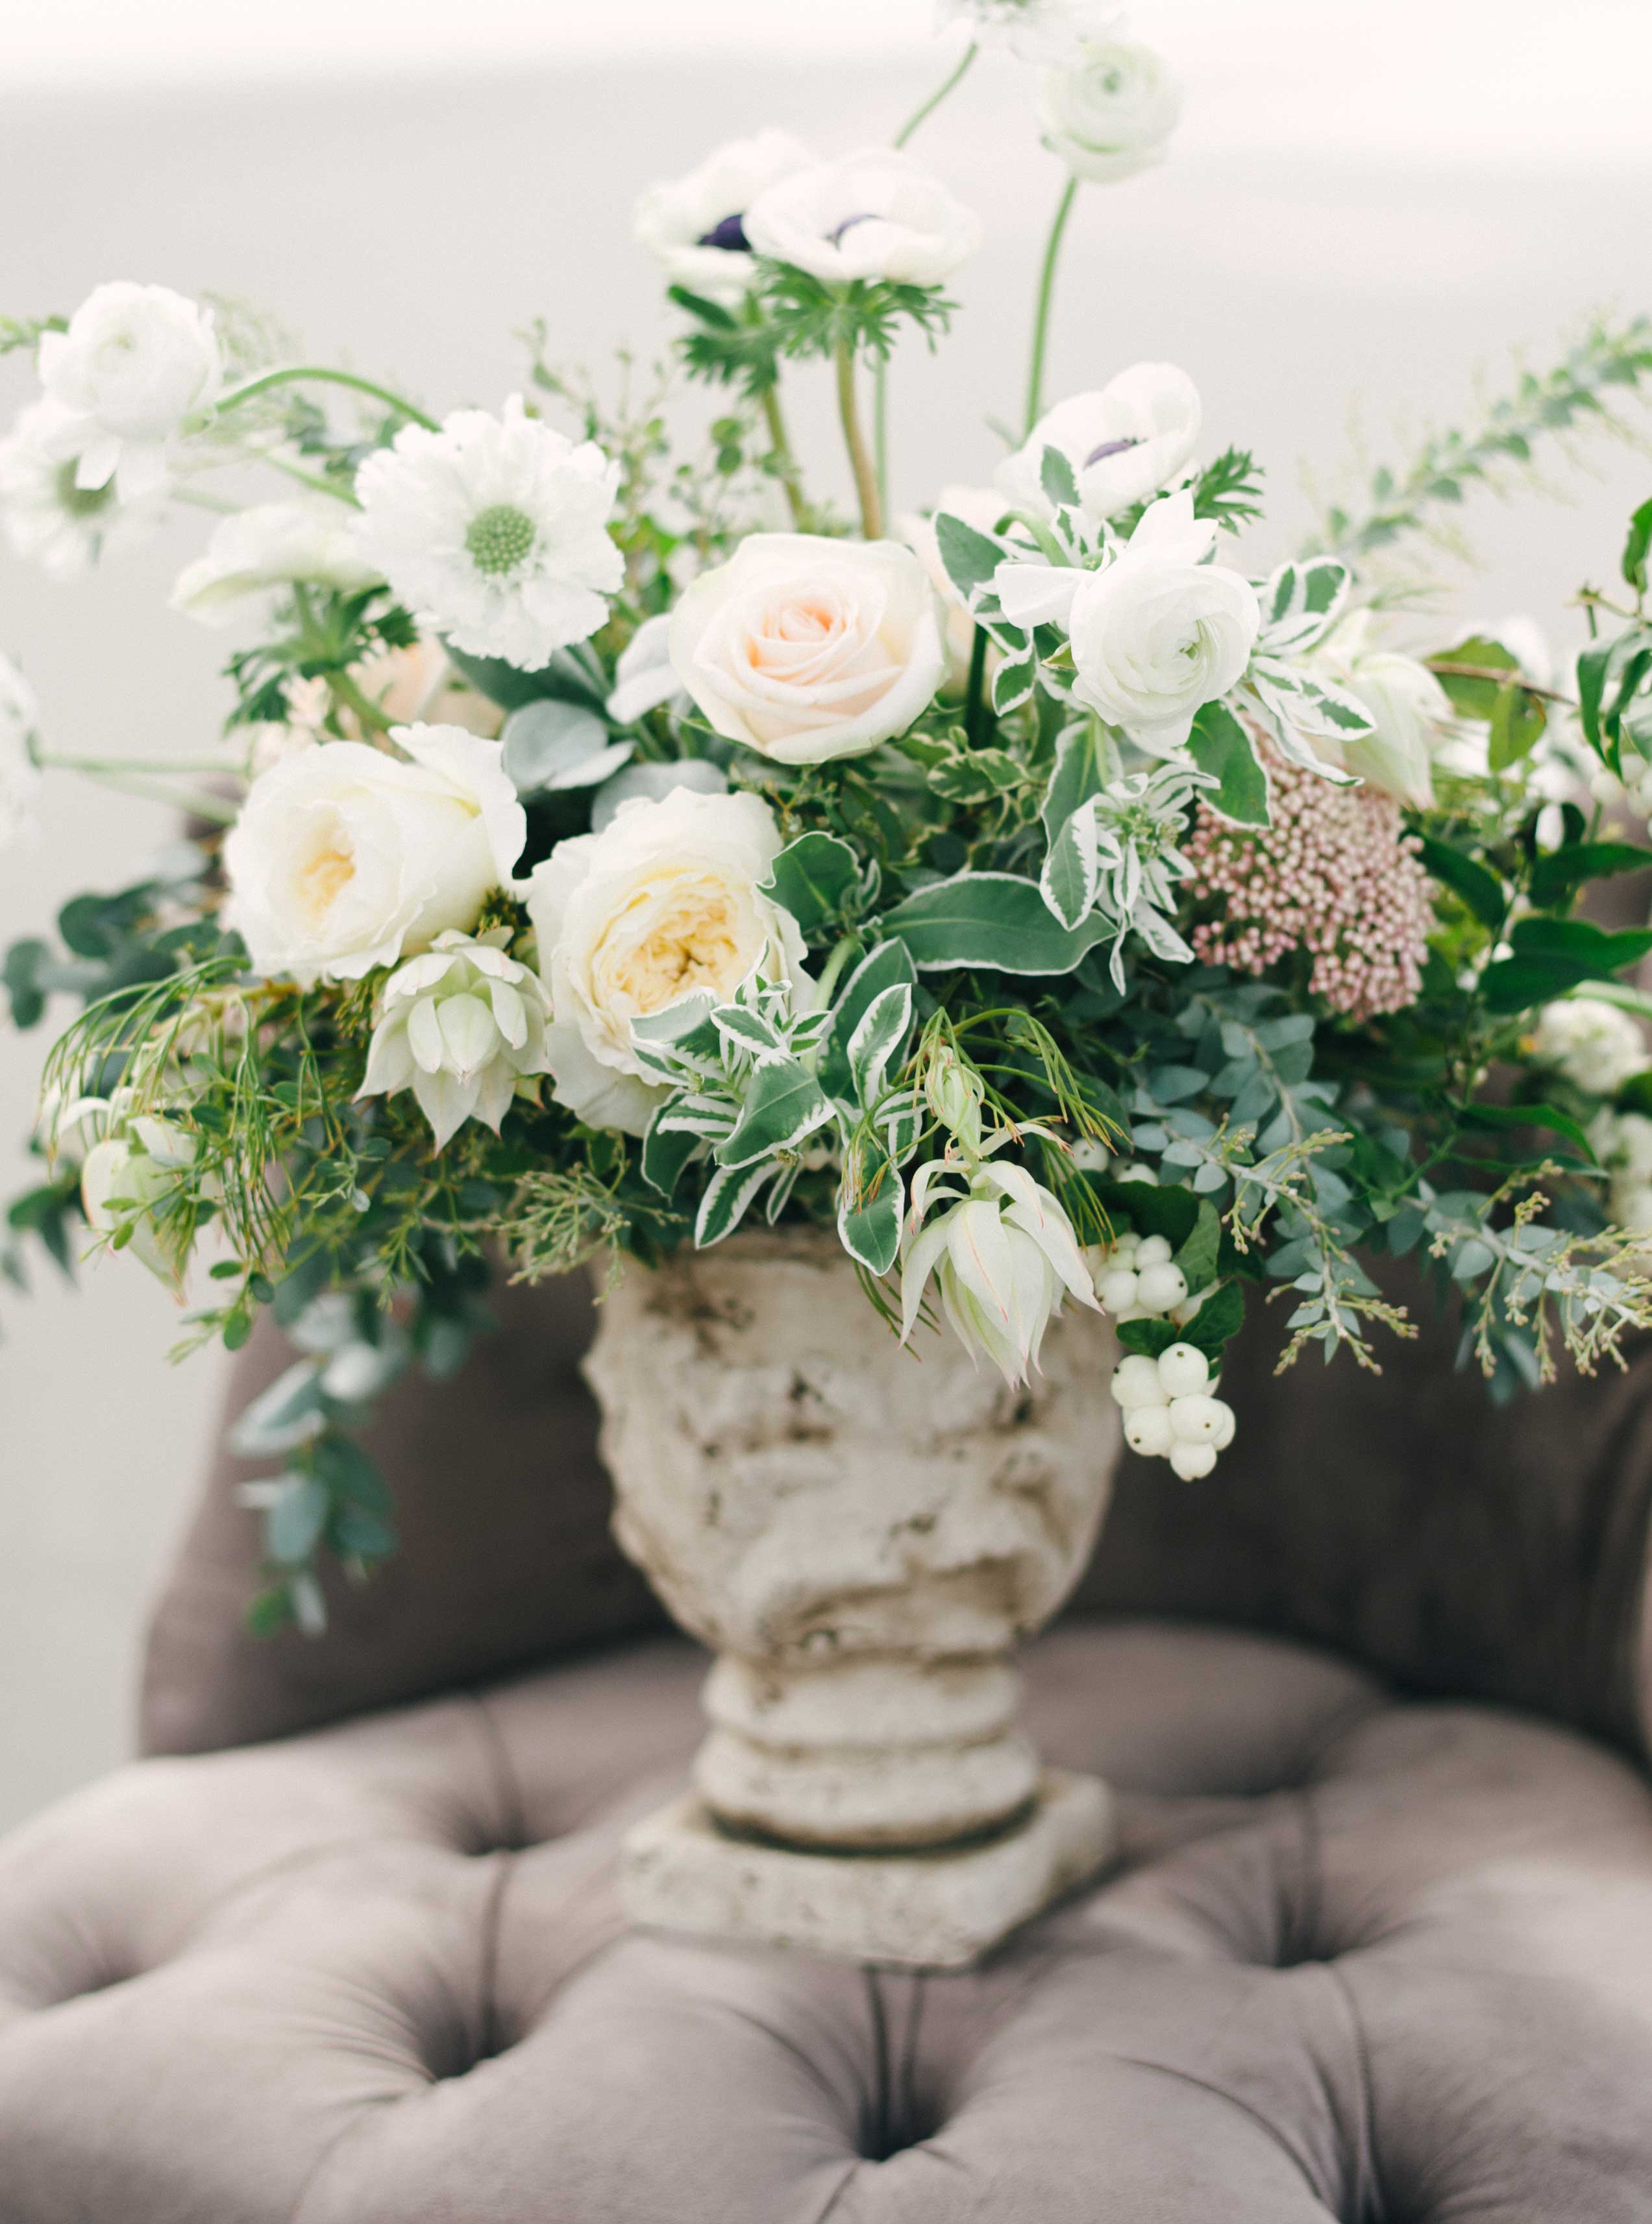 Wedding Color Palette Ideas: Muted Blue & Grey - Inside ...